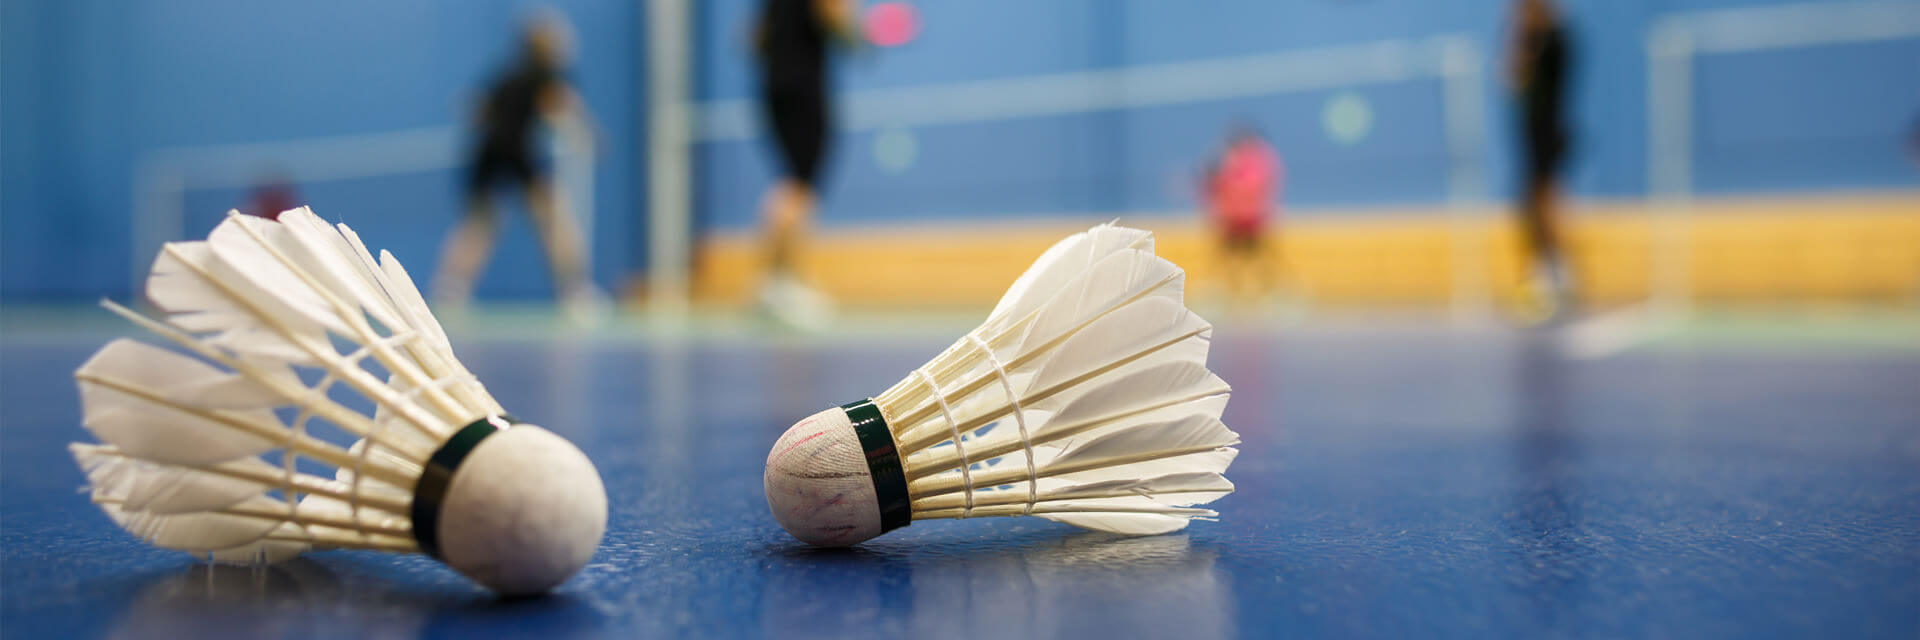 Section badminton